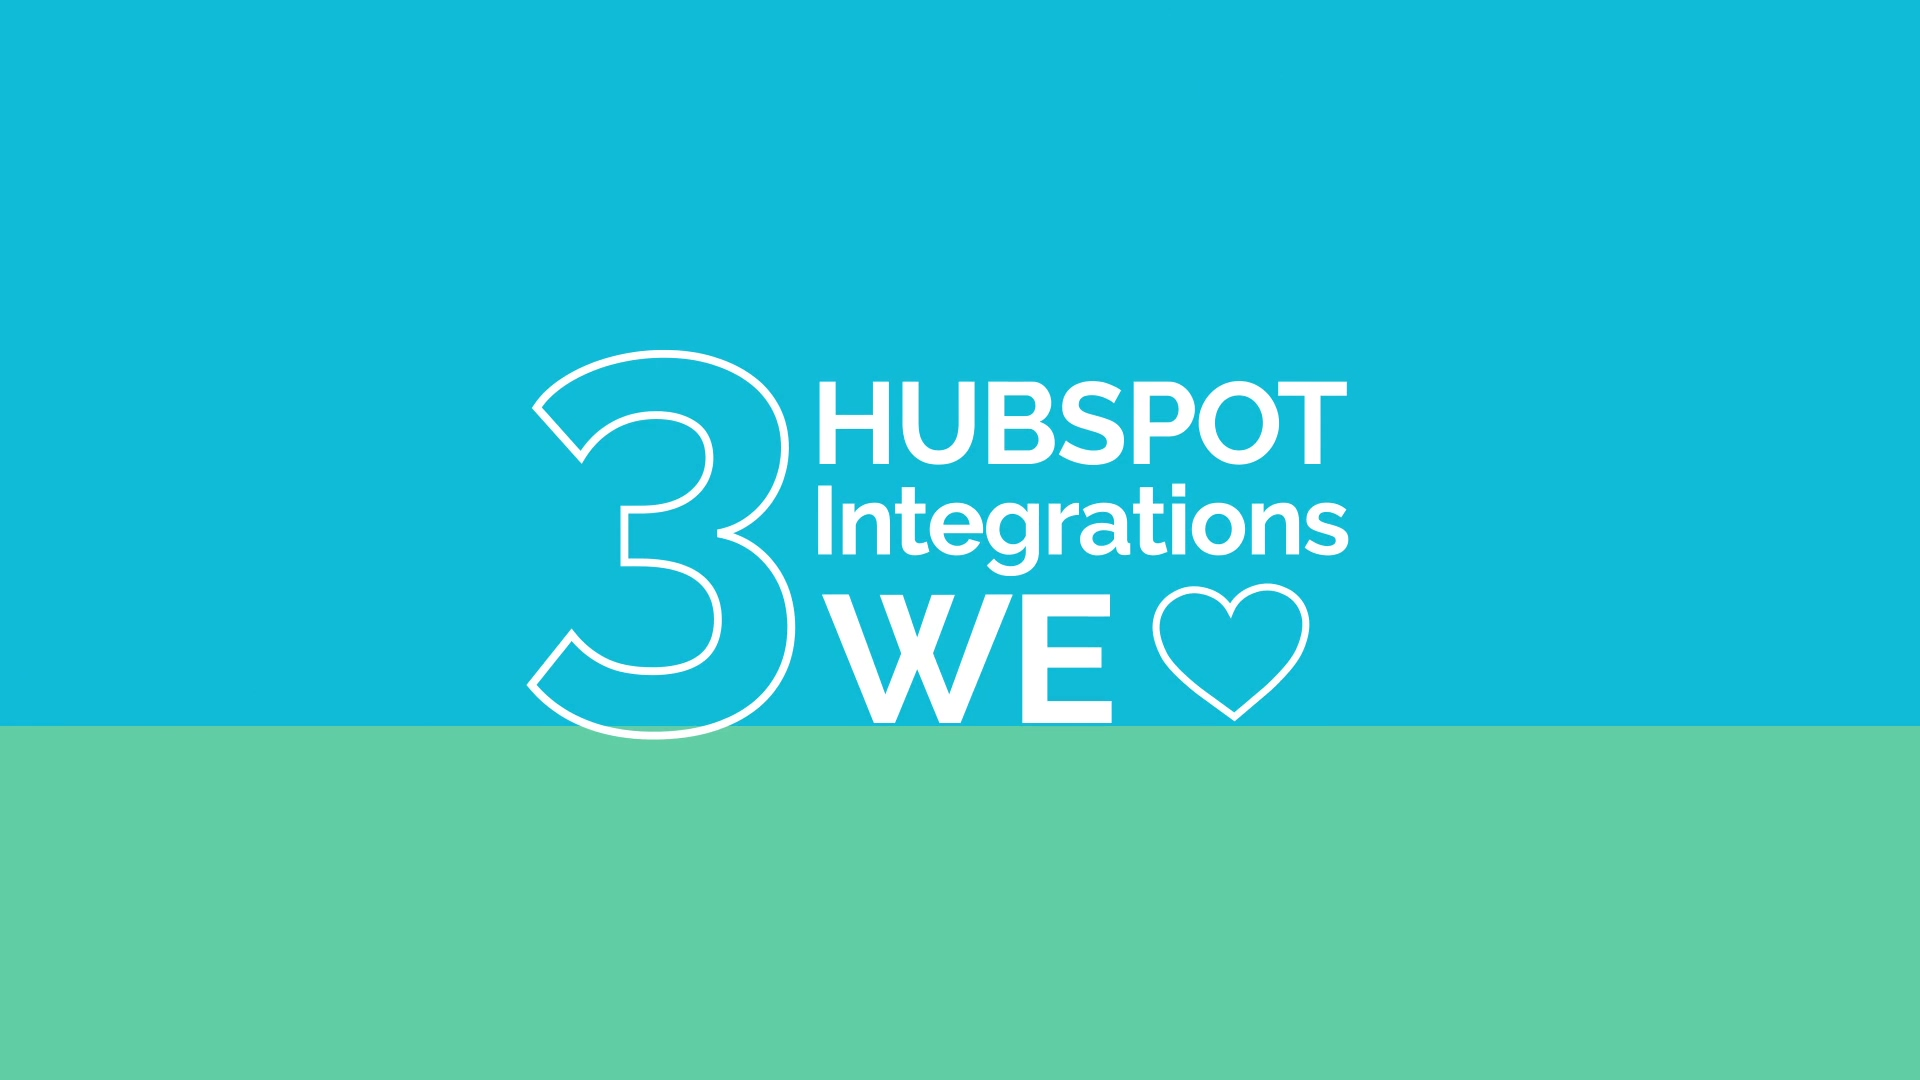 Hubspot Integrations we Love